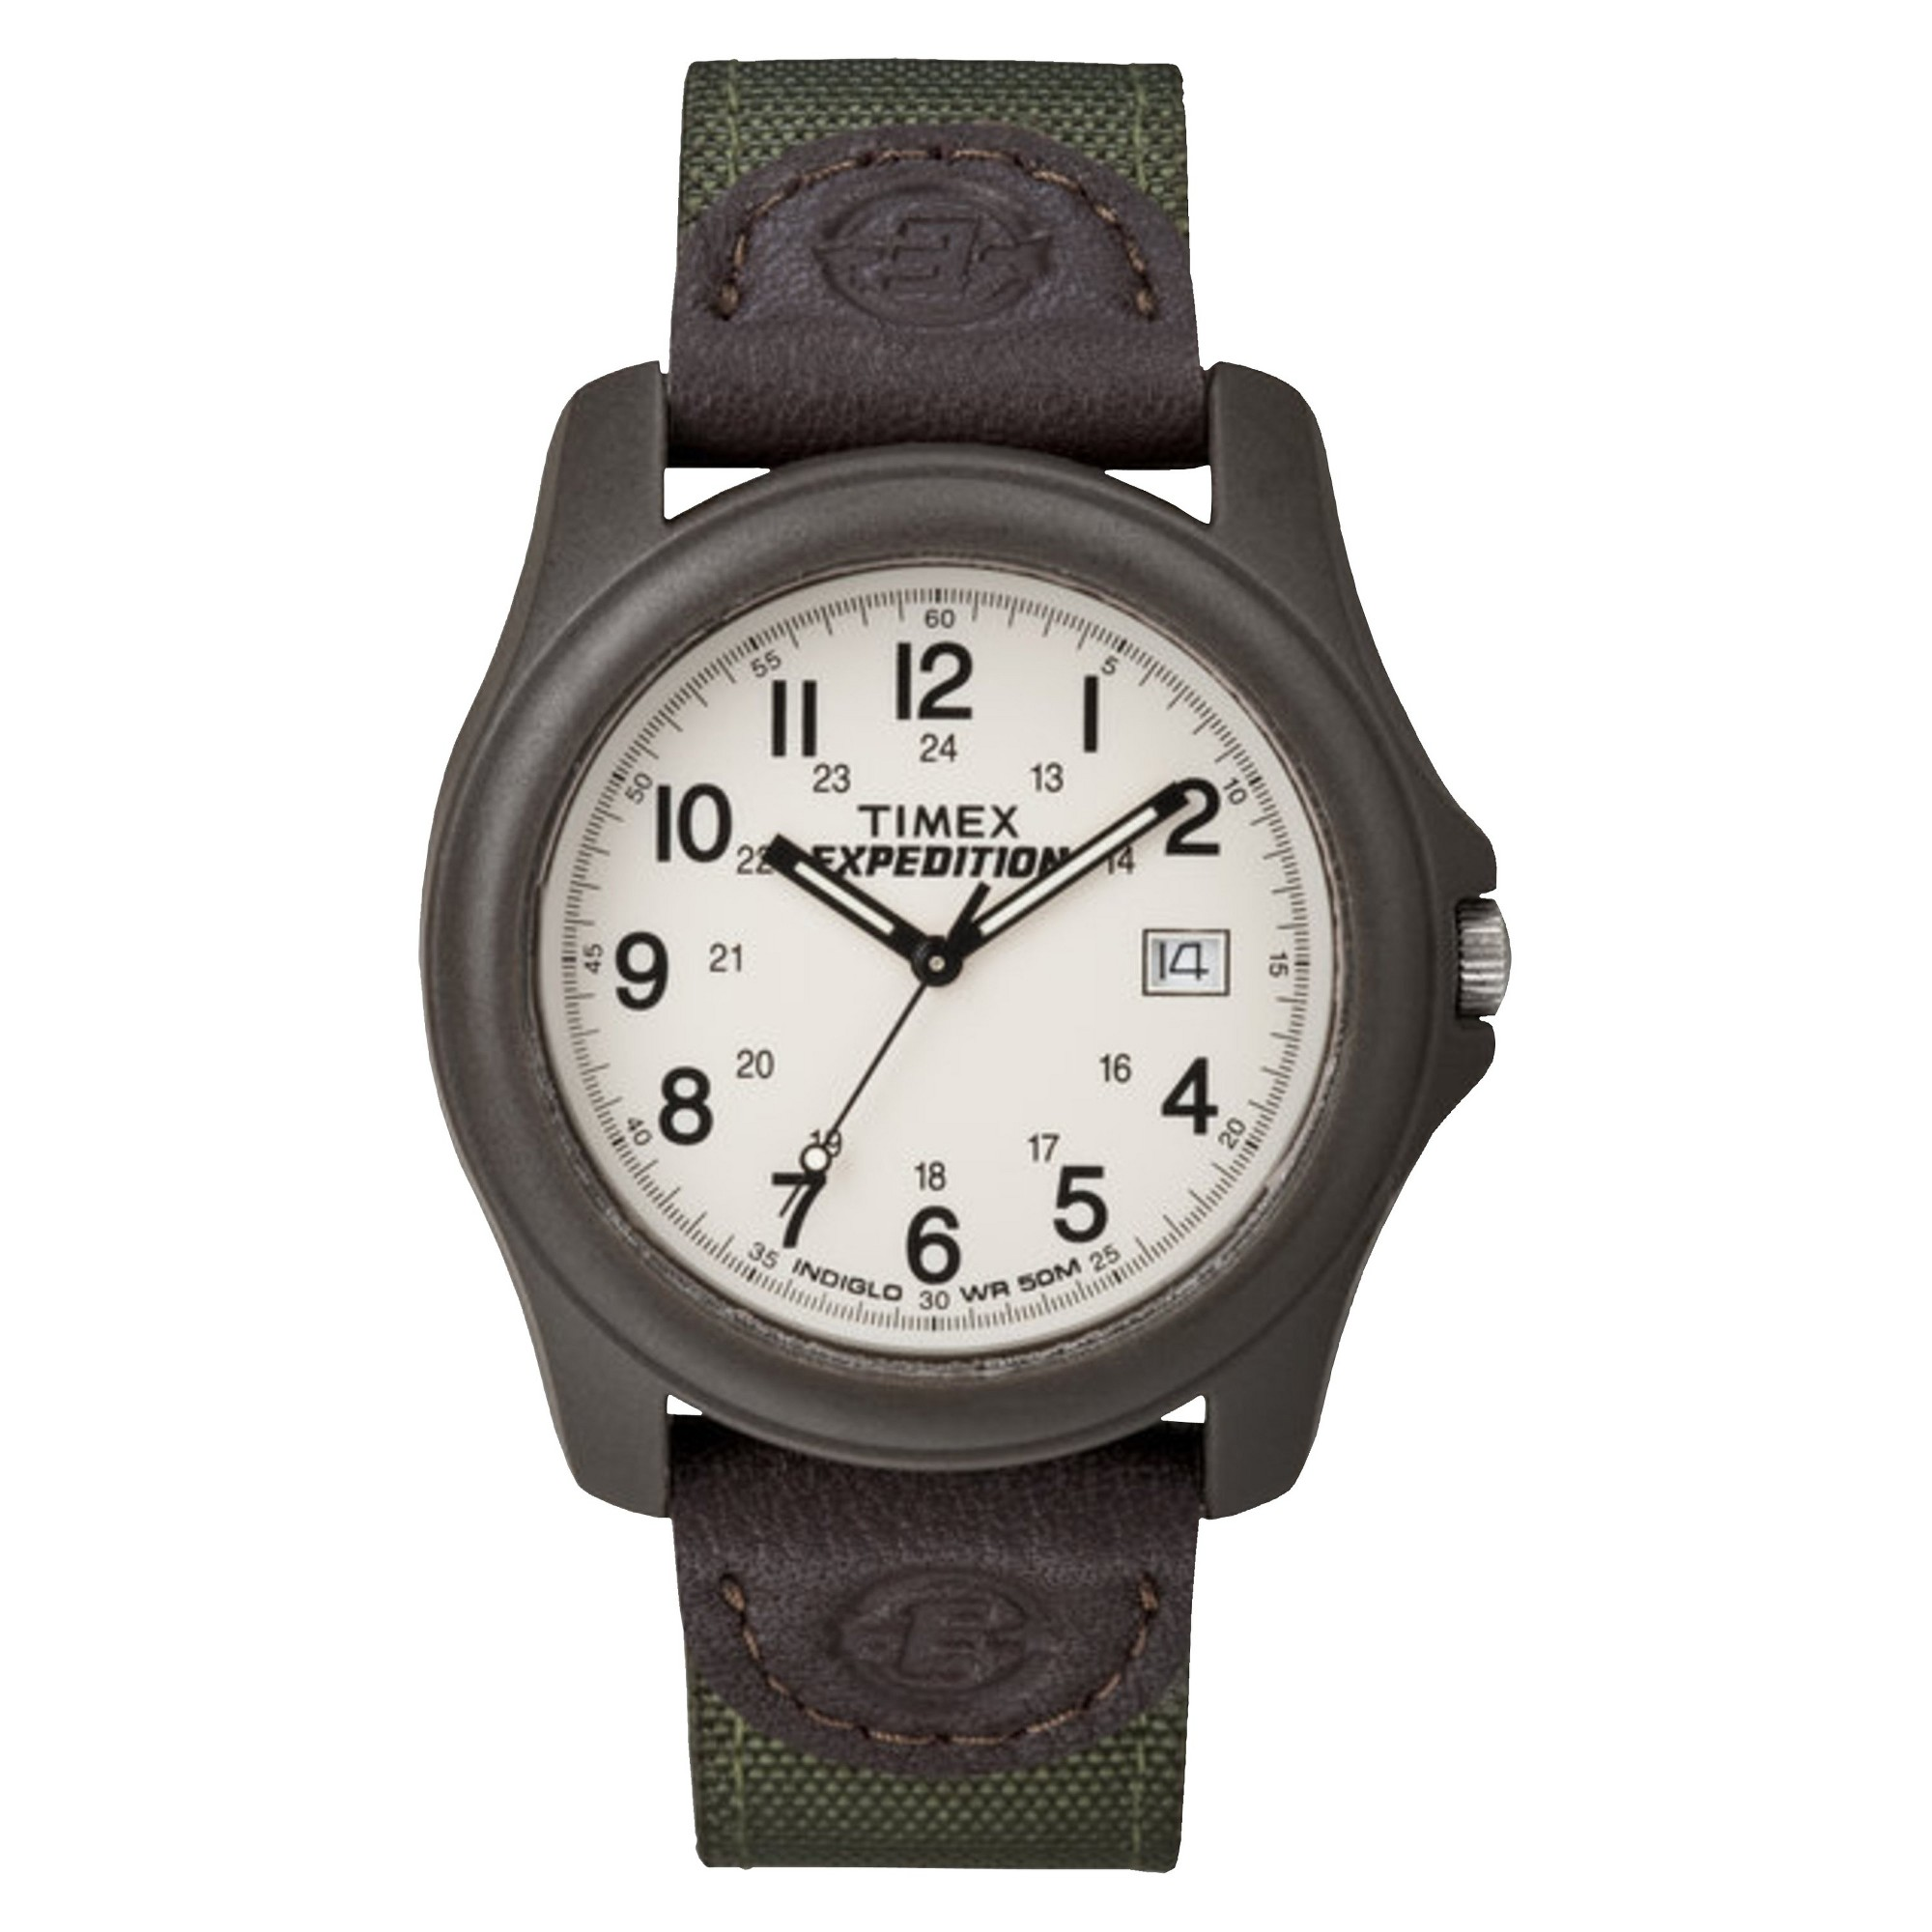 Men's Timex Expedition Camper Watch with Nylon/Leather Strap and Resin Case - Green T49101JT, Size: Small